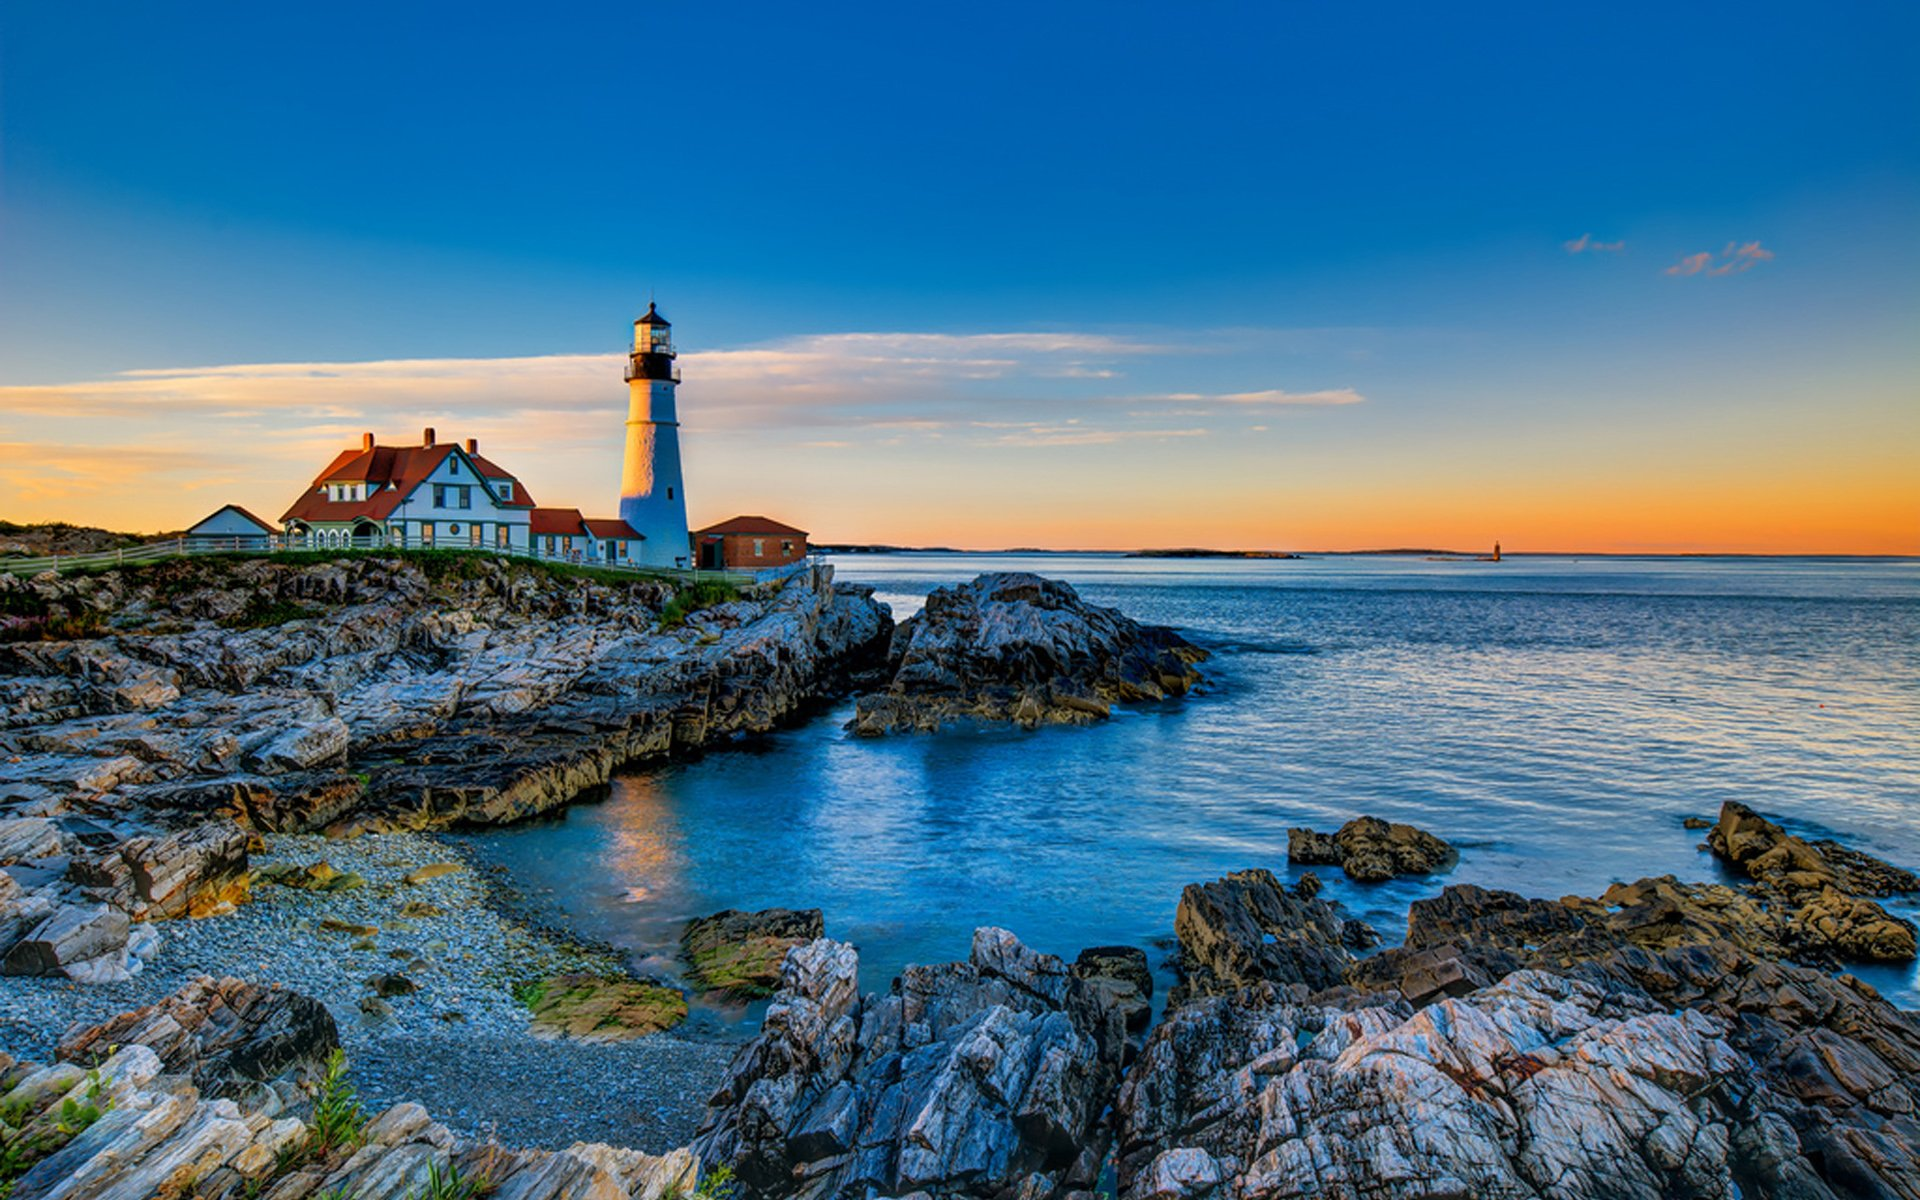 Lighthouse Hd Wallpapers: Hdr Landscape Full HD Wallpaper And Background Image